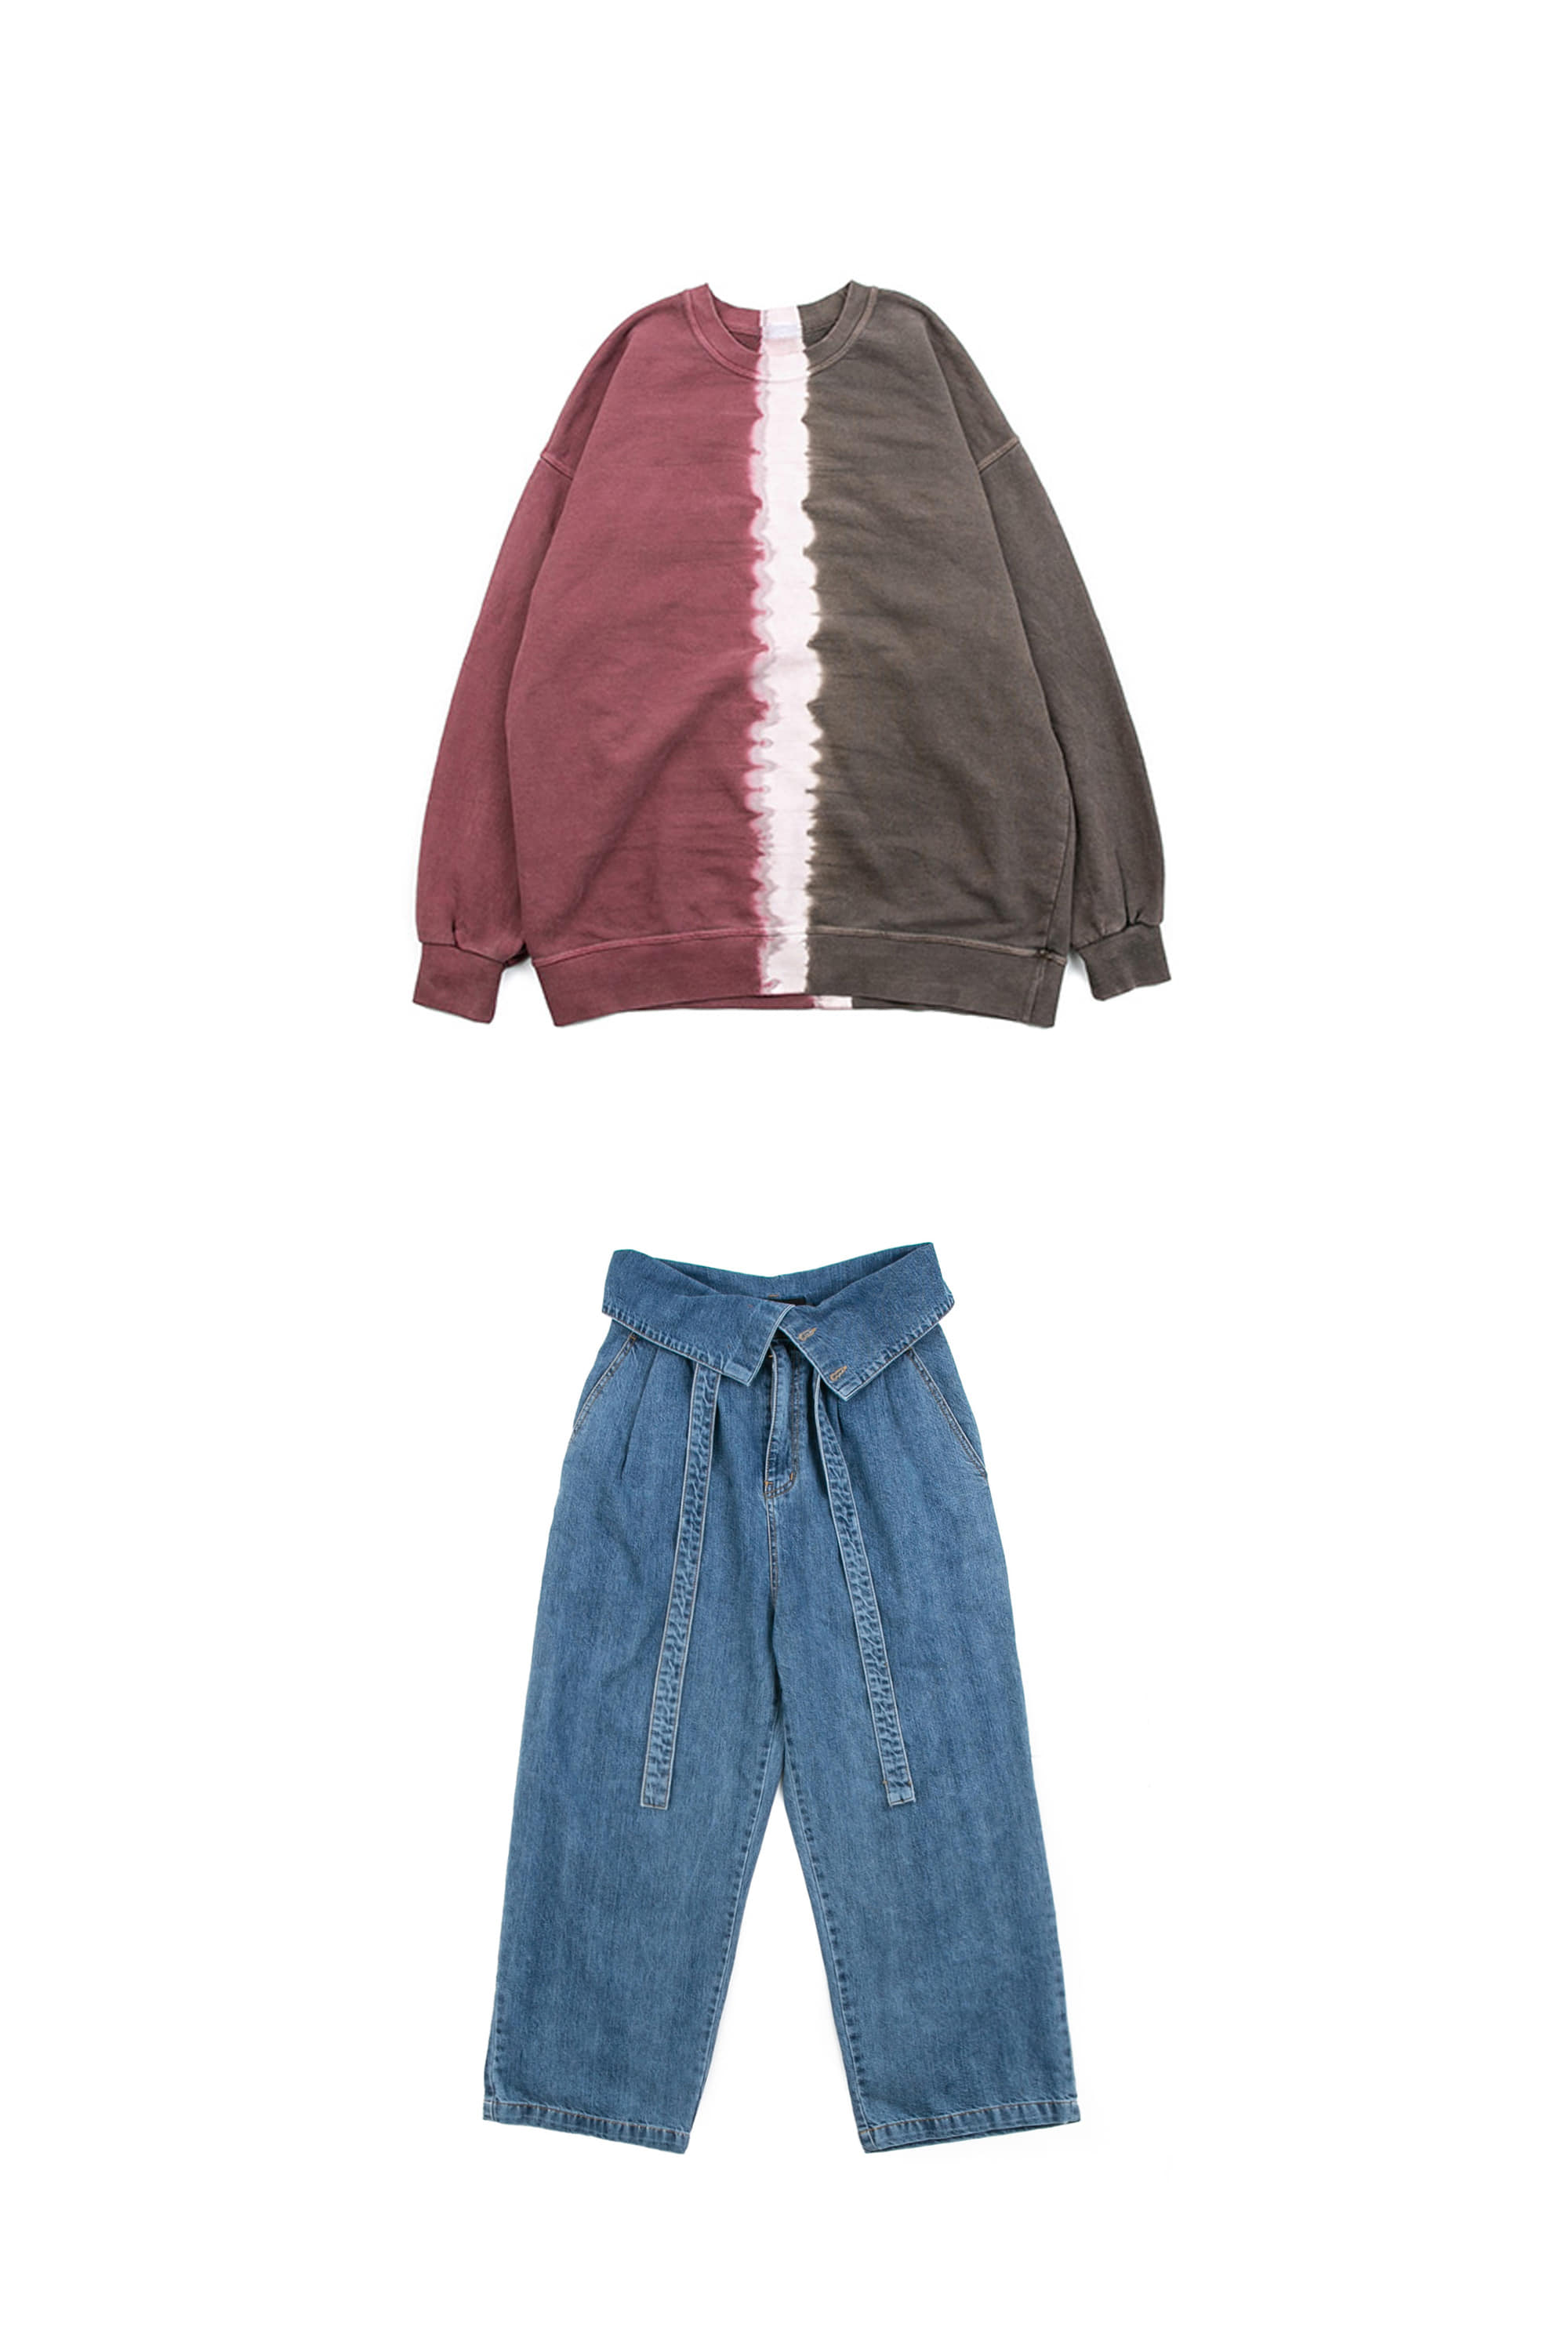 Half Tie-dye Sweat Shirts & Over Fold Denim Pants